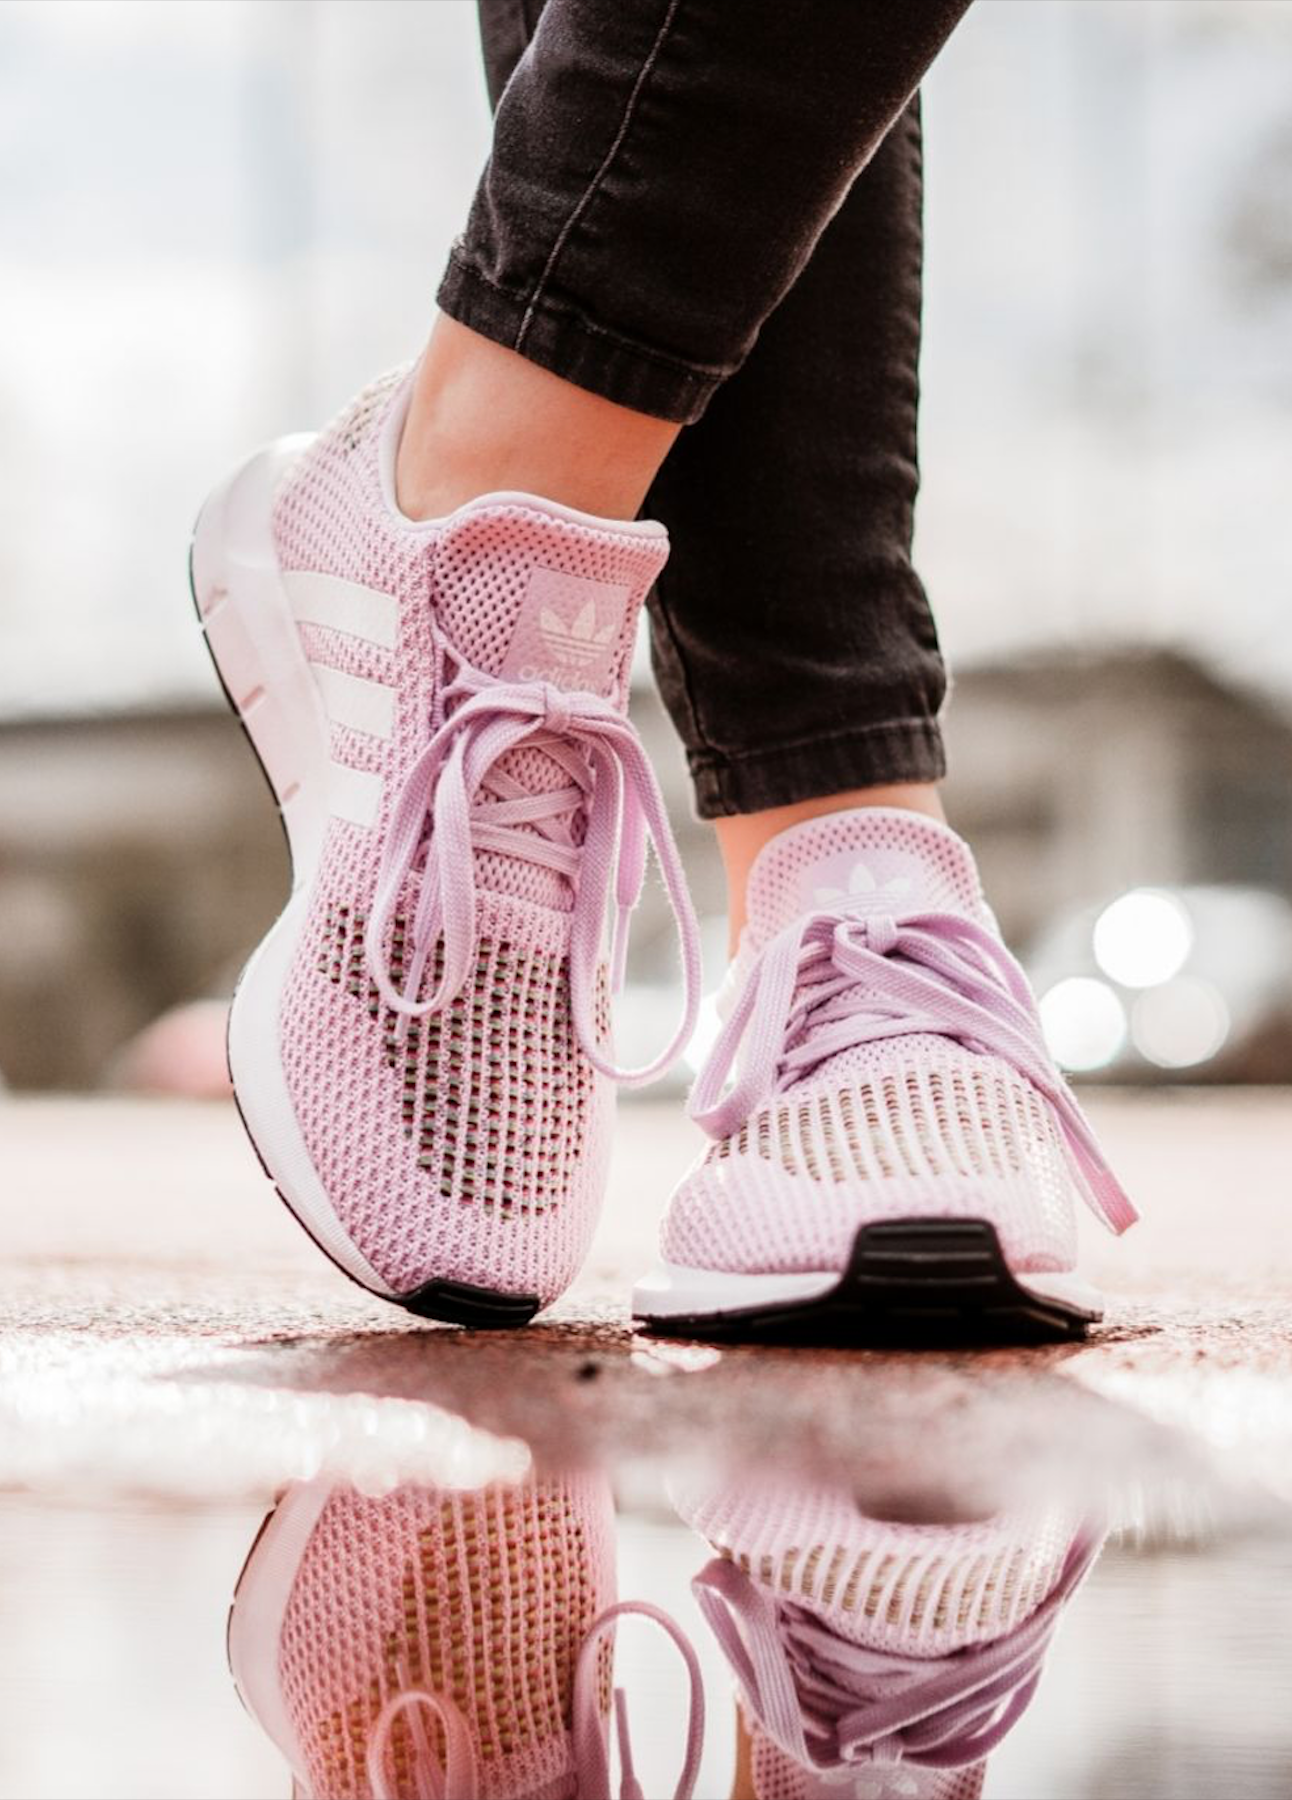 1c23a46e6c The stylish new adidas Swift Run Shoes in aero pink. Perfect for running or  to wear casually, these are one of the coolest adidas sneakers of 2018.